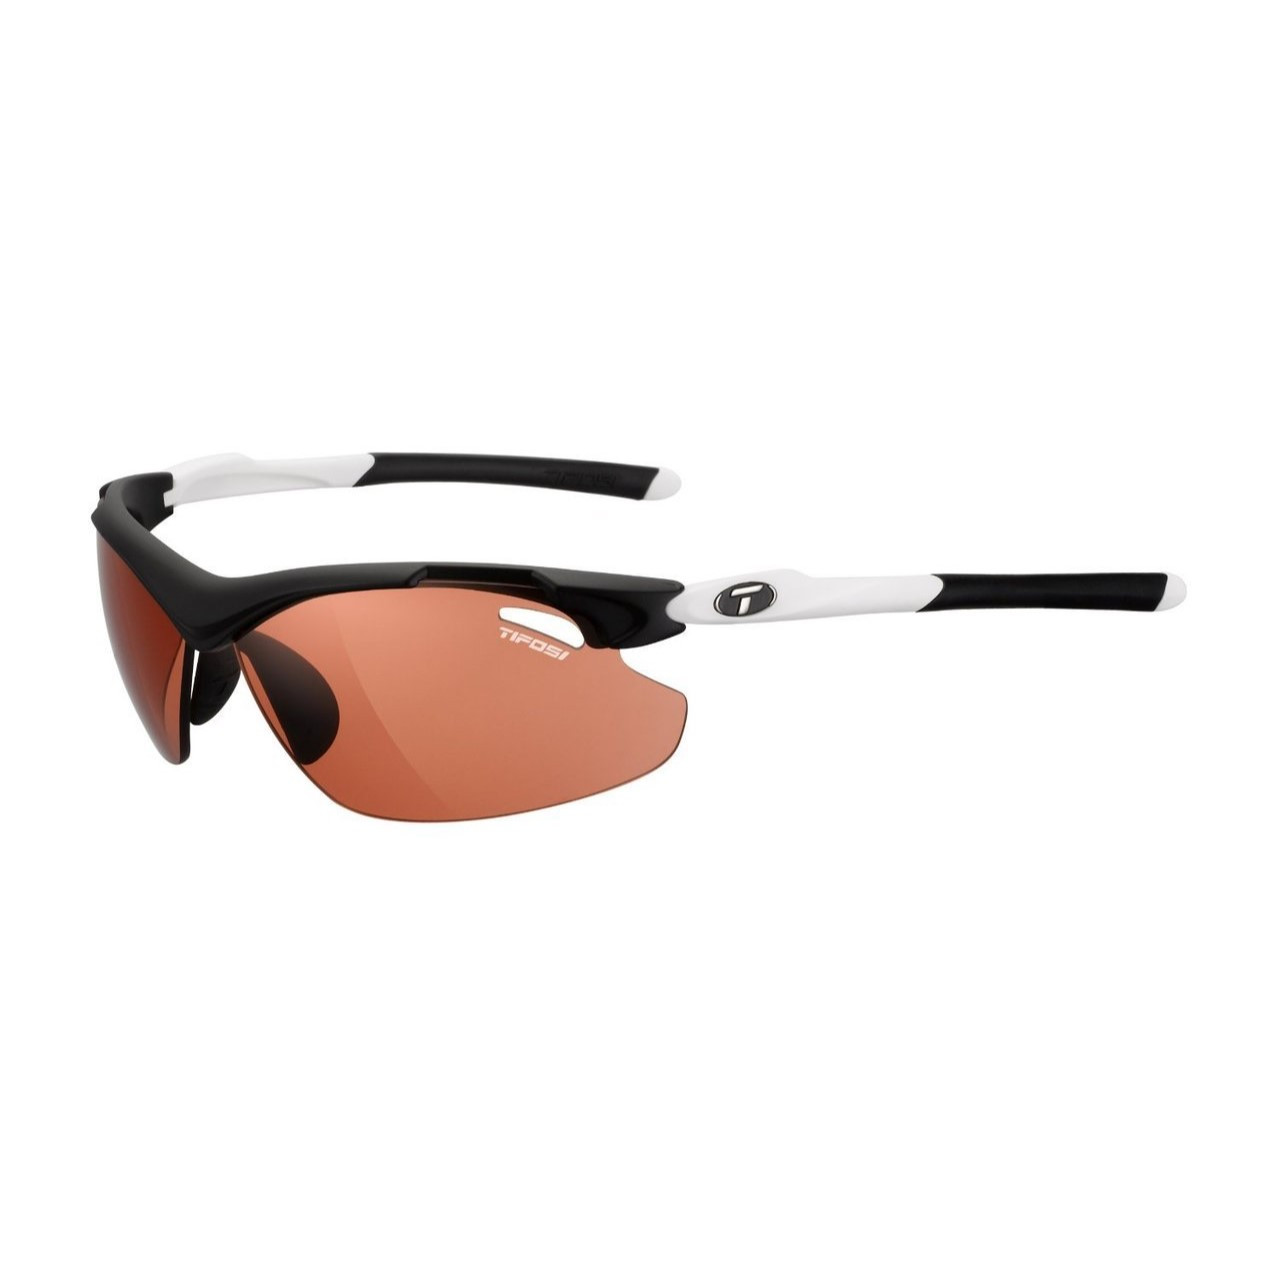 Tifosi Tyrant 2.0 Sunglasses with High Speed Red Fototec Lens - 2019 price